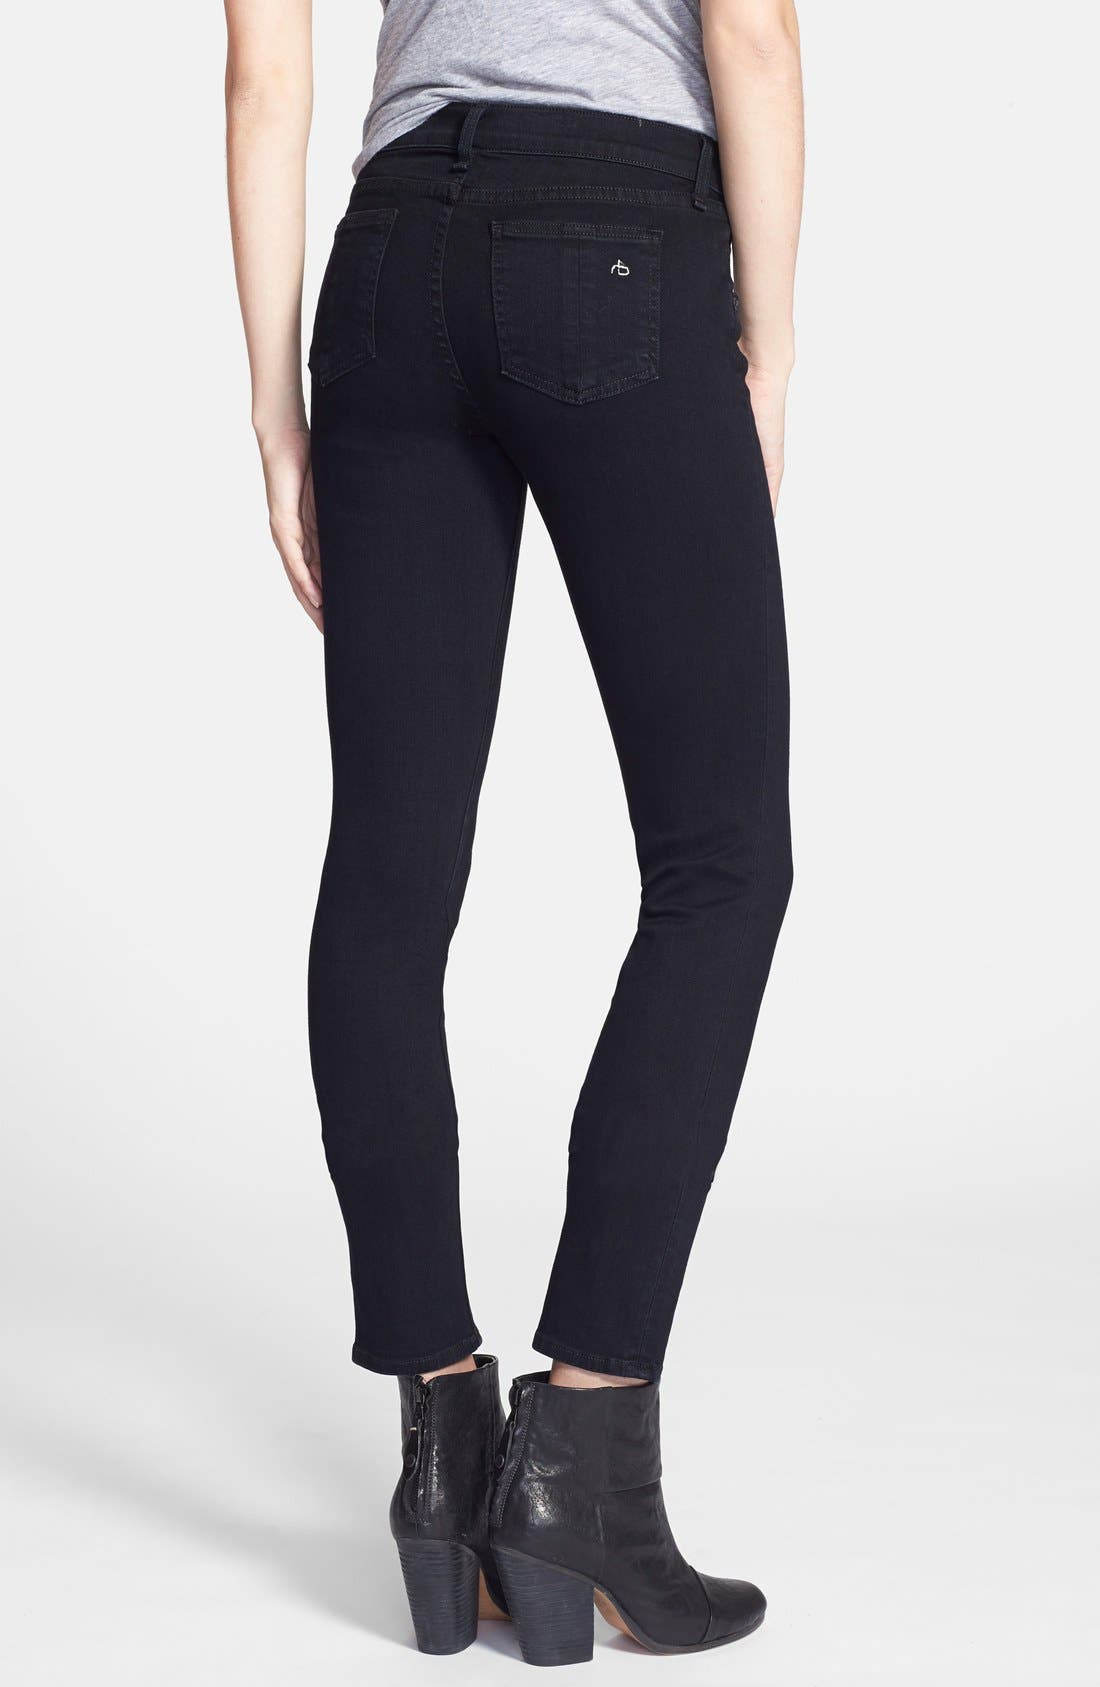 Alternate Image 2  - rag & bone/JEAN 'The Skinny' Stretch Jeans (Coal)